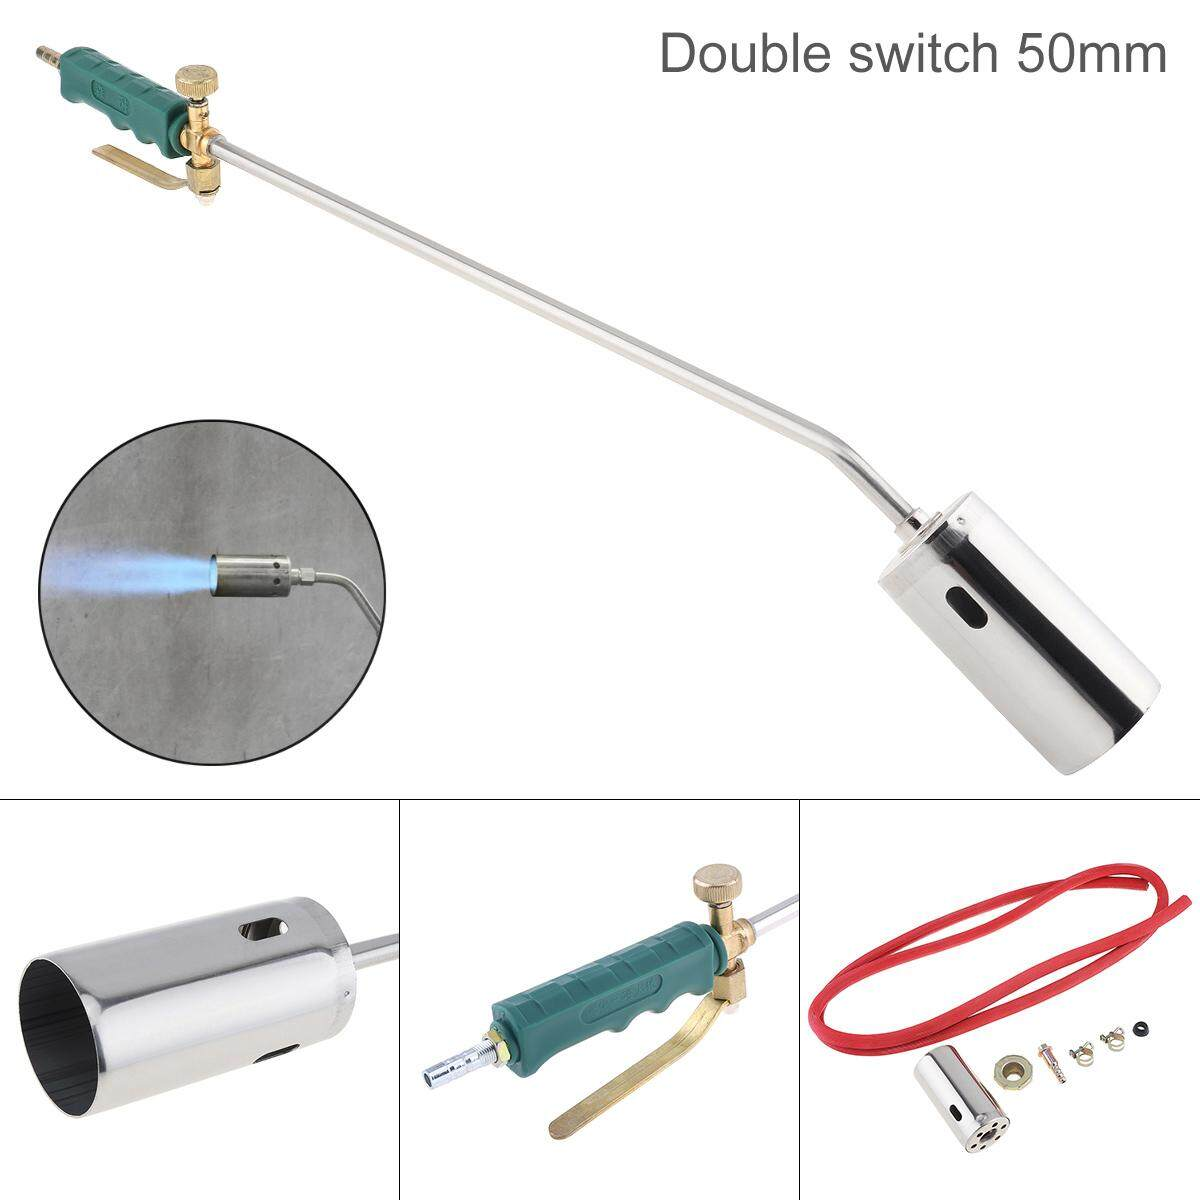 50 mm Double Switch Type Liquefied Gas Torch Welding Spitfire-Gun Support Oxygen Acetylene Propane for Barbecue / Hair Removal